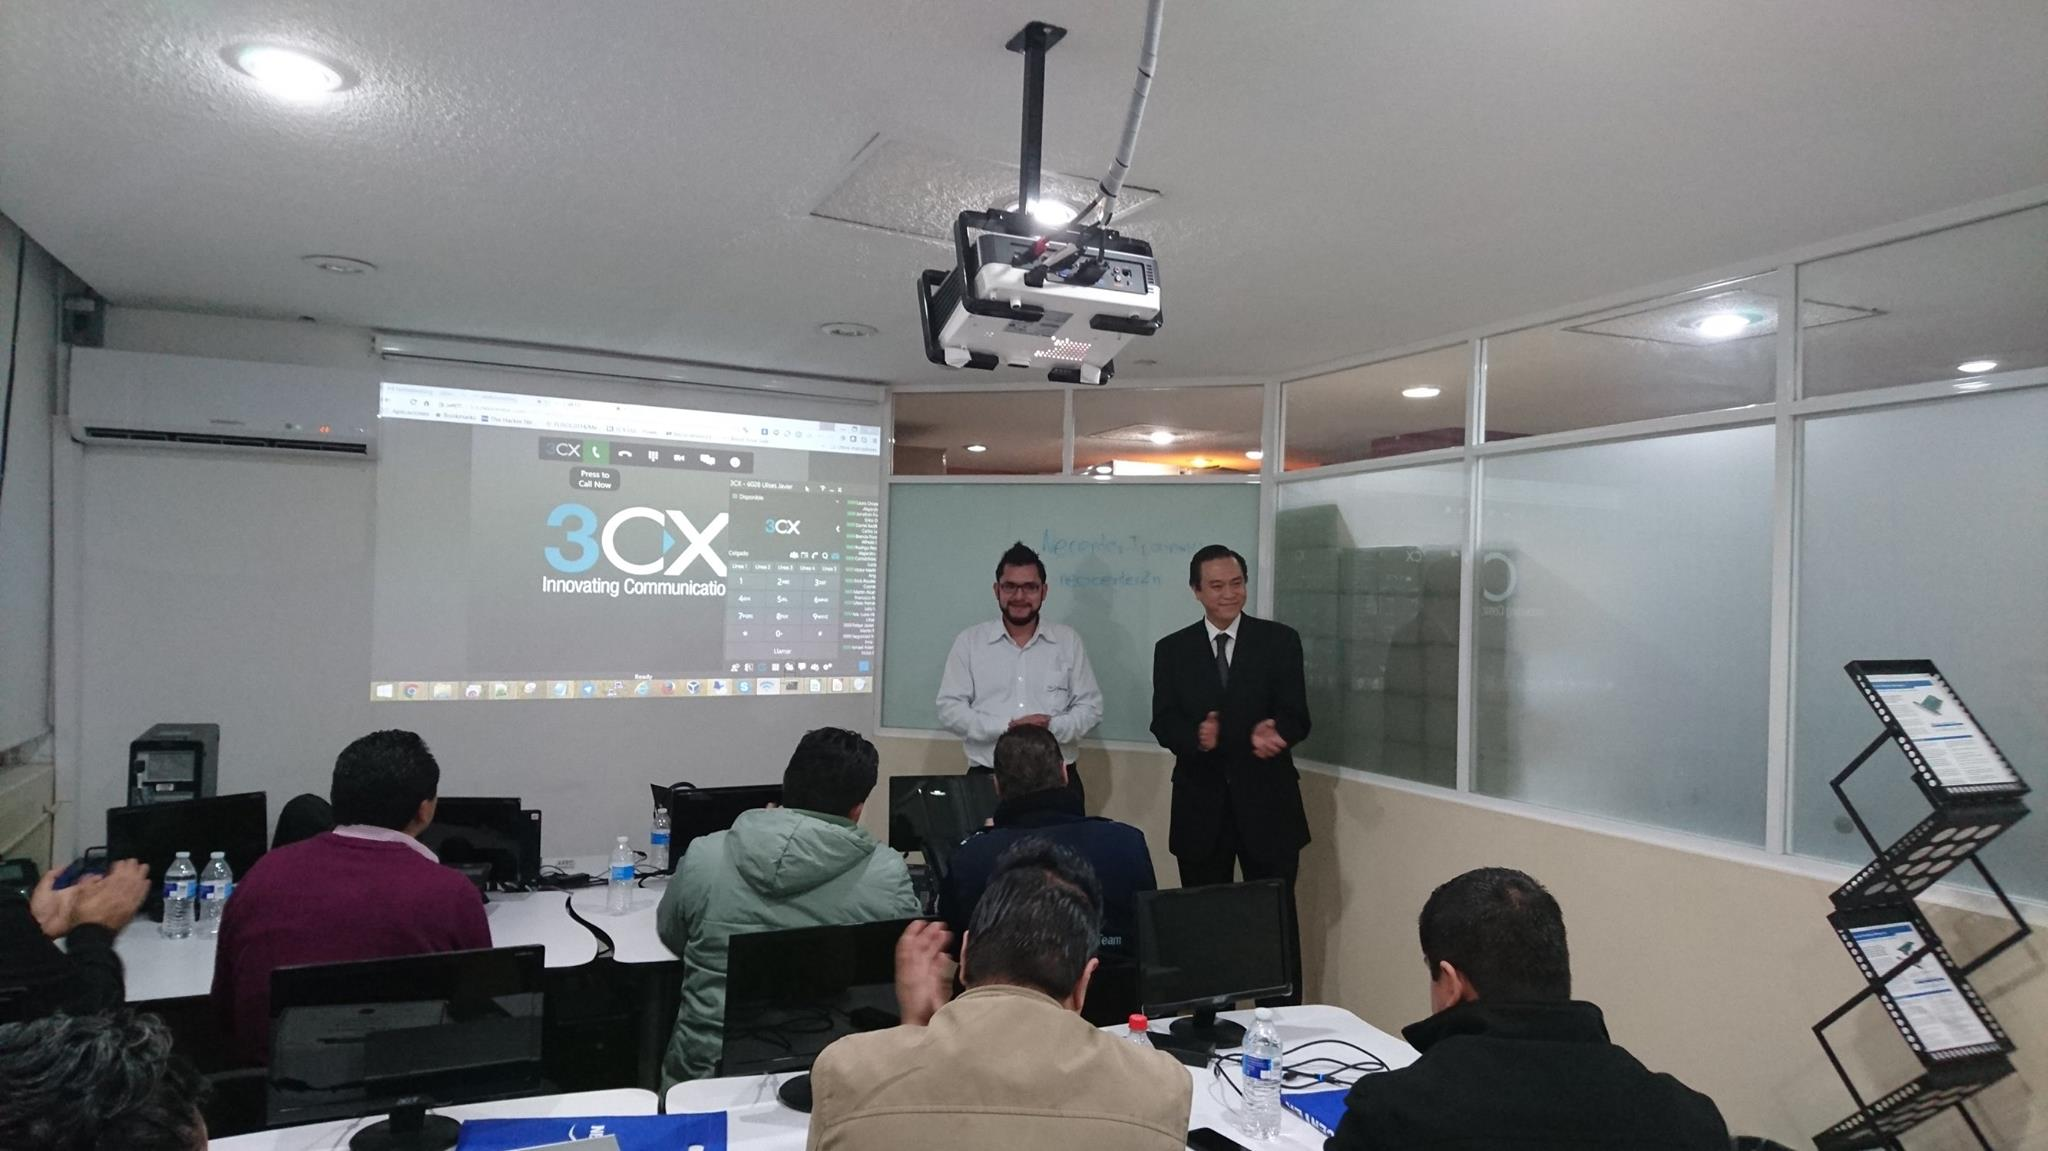 3cx training mexico